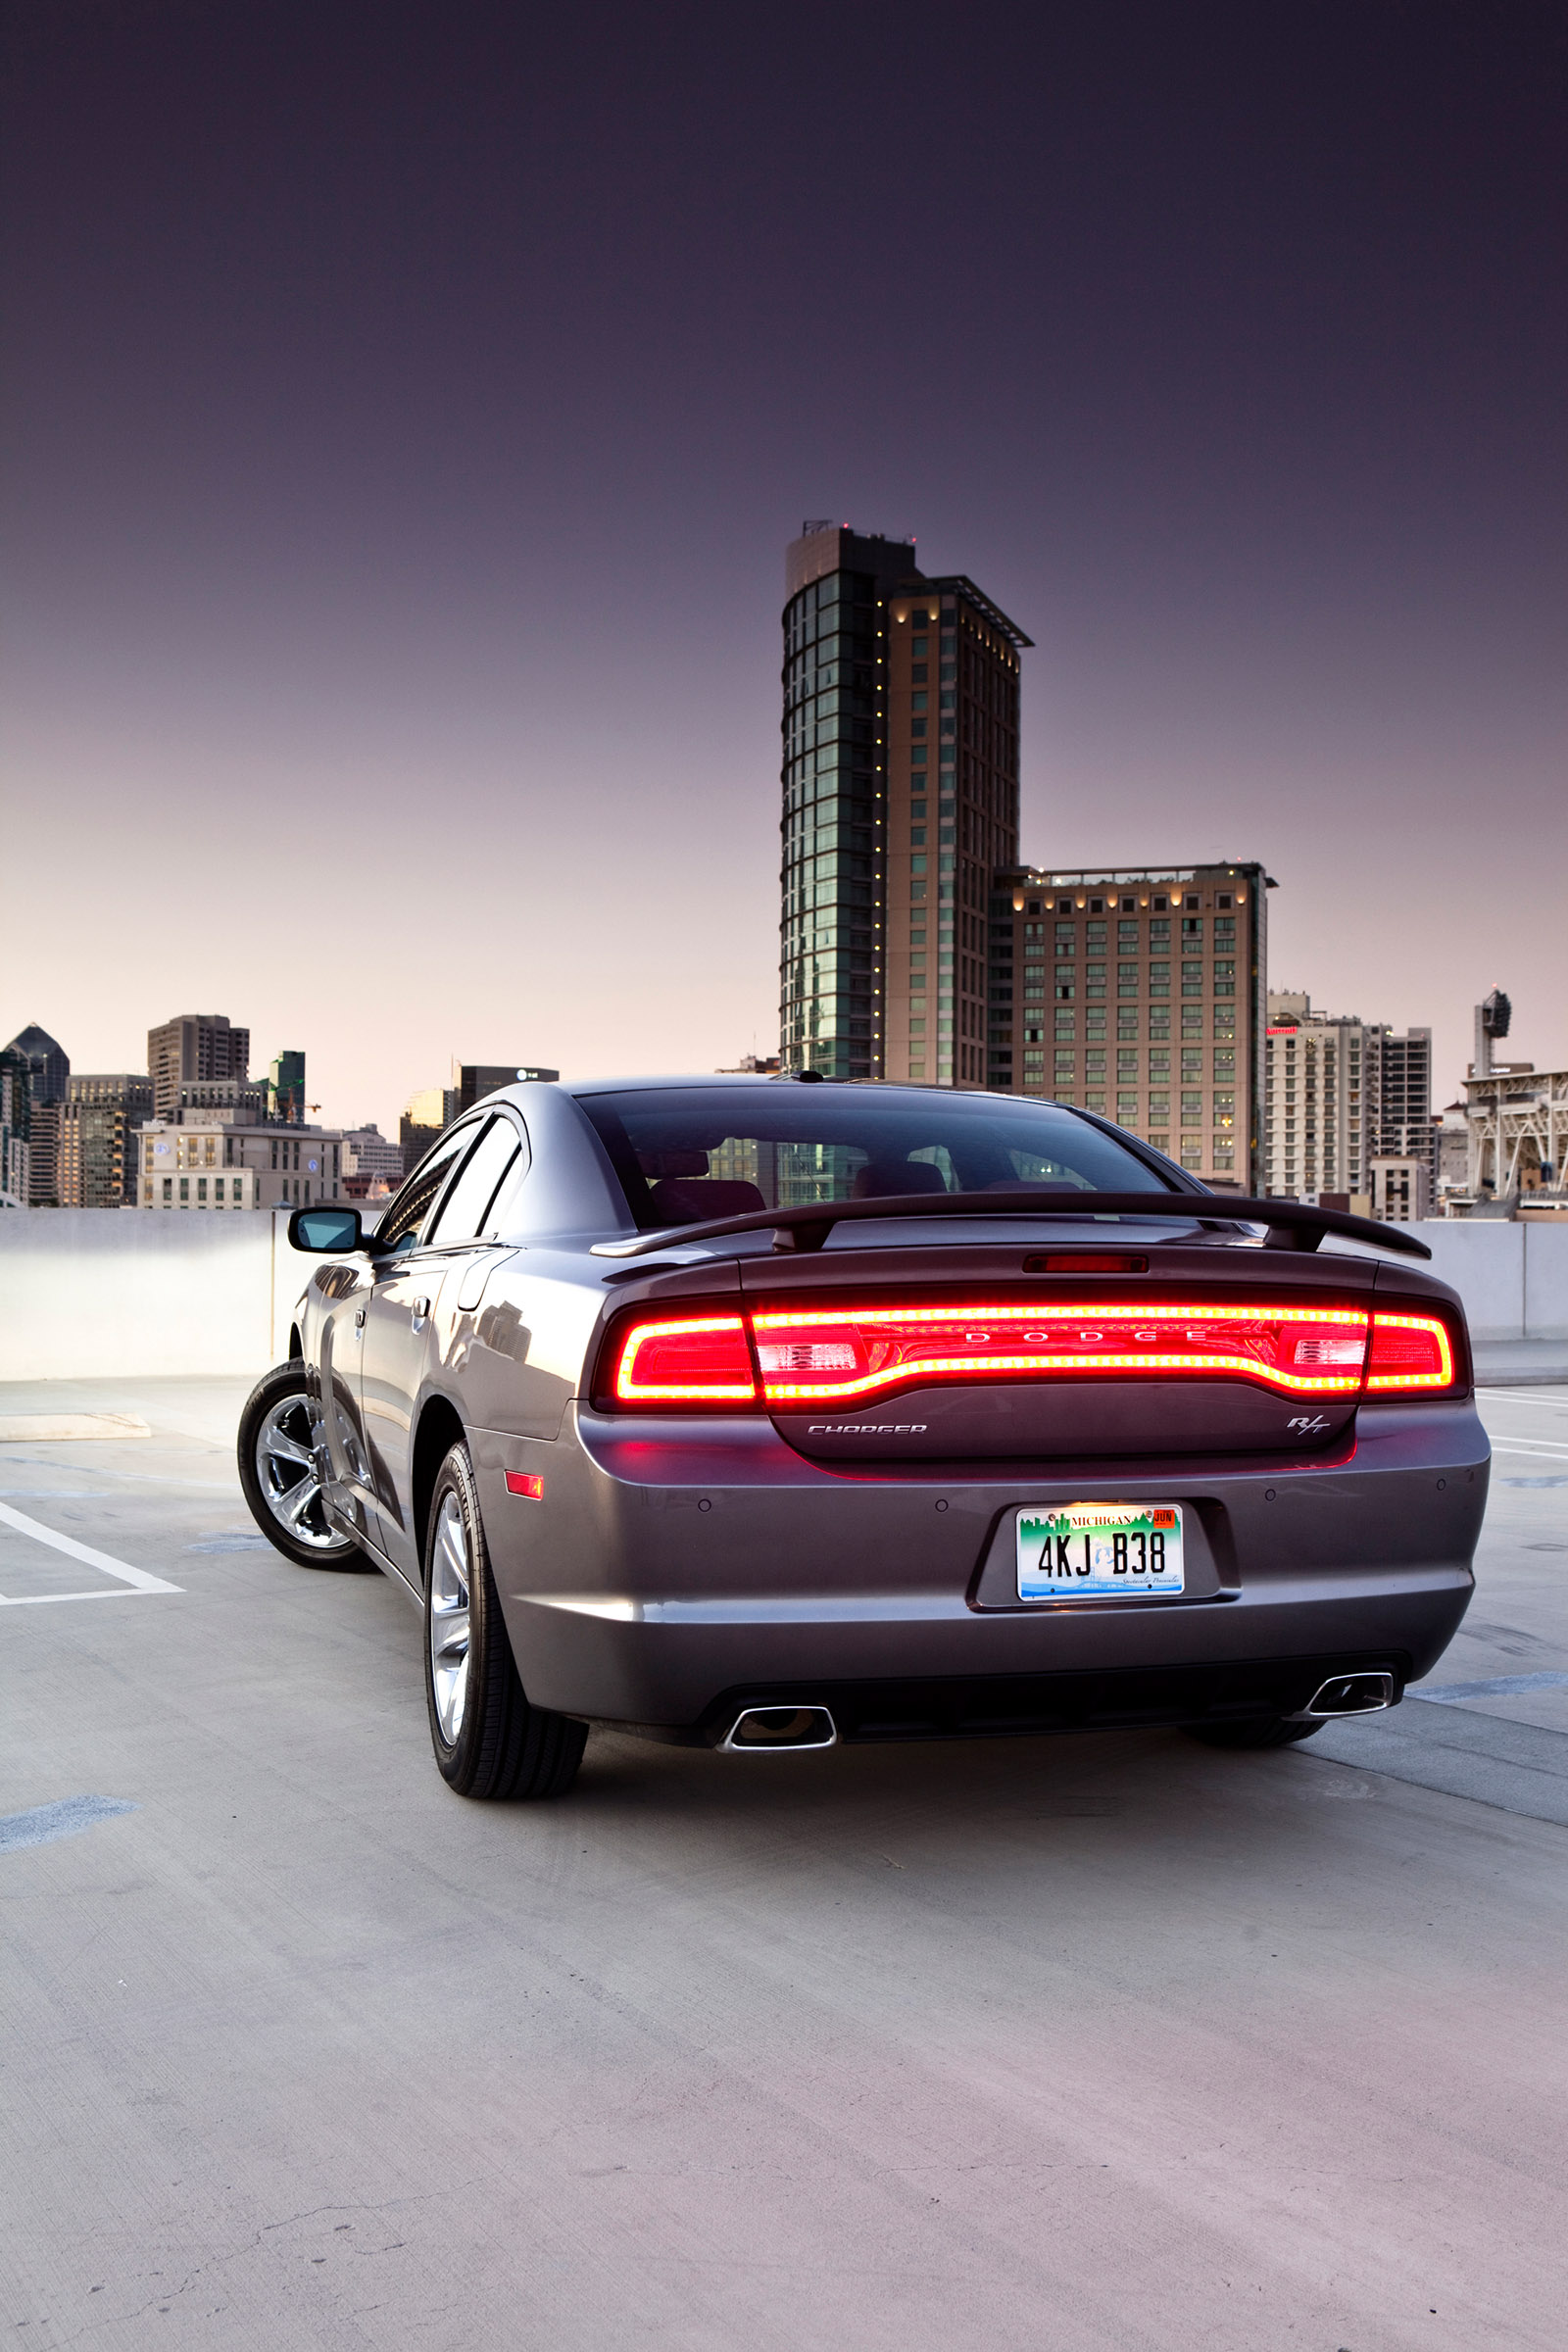 Charger Rt Dodge Charger R T Dodge Black Tires Muscle: 2012 Dodge Charger RT Enhanced By Beats™